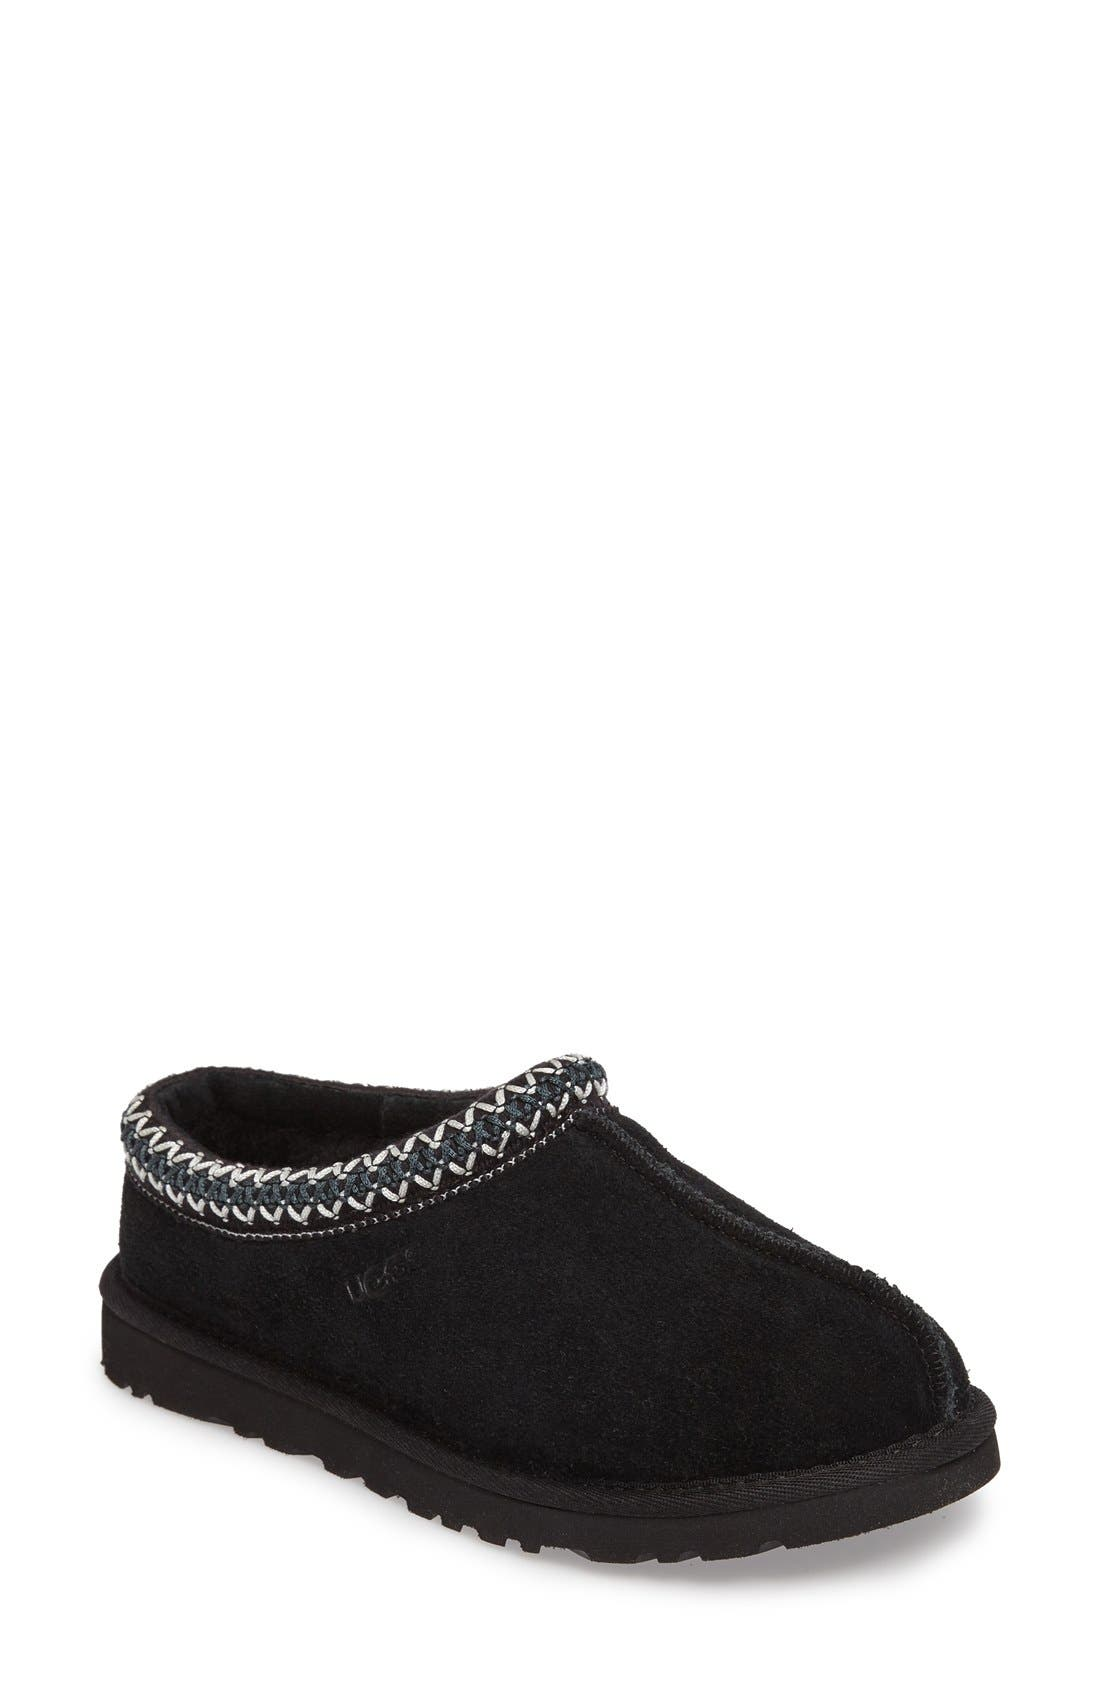 Alternate Image 1 Selected - UGG® 'Tasman' Slipper (Women)